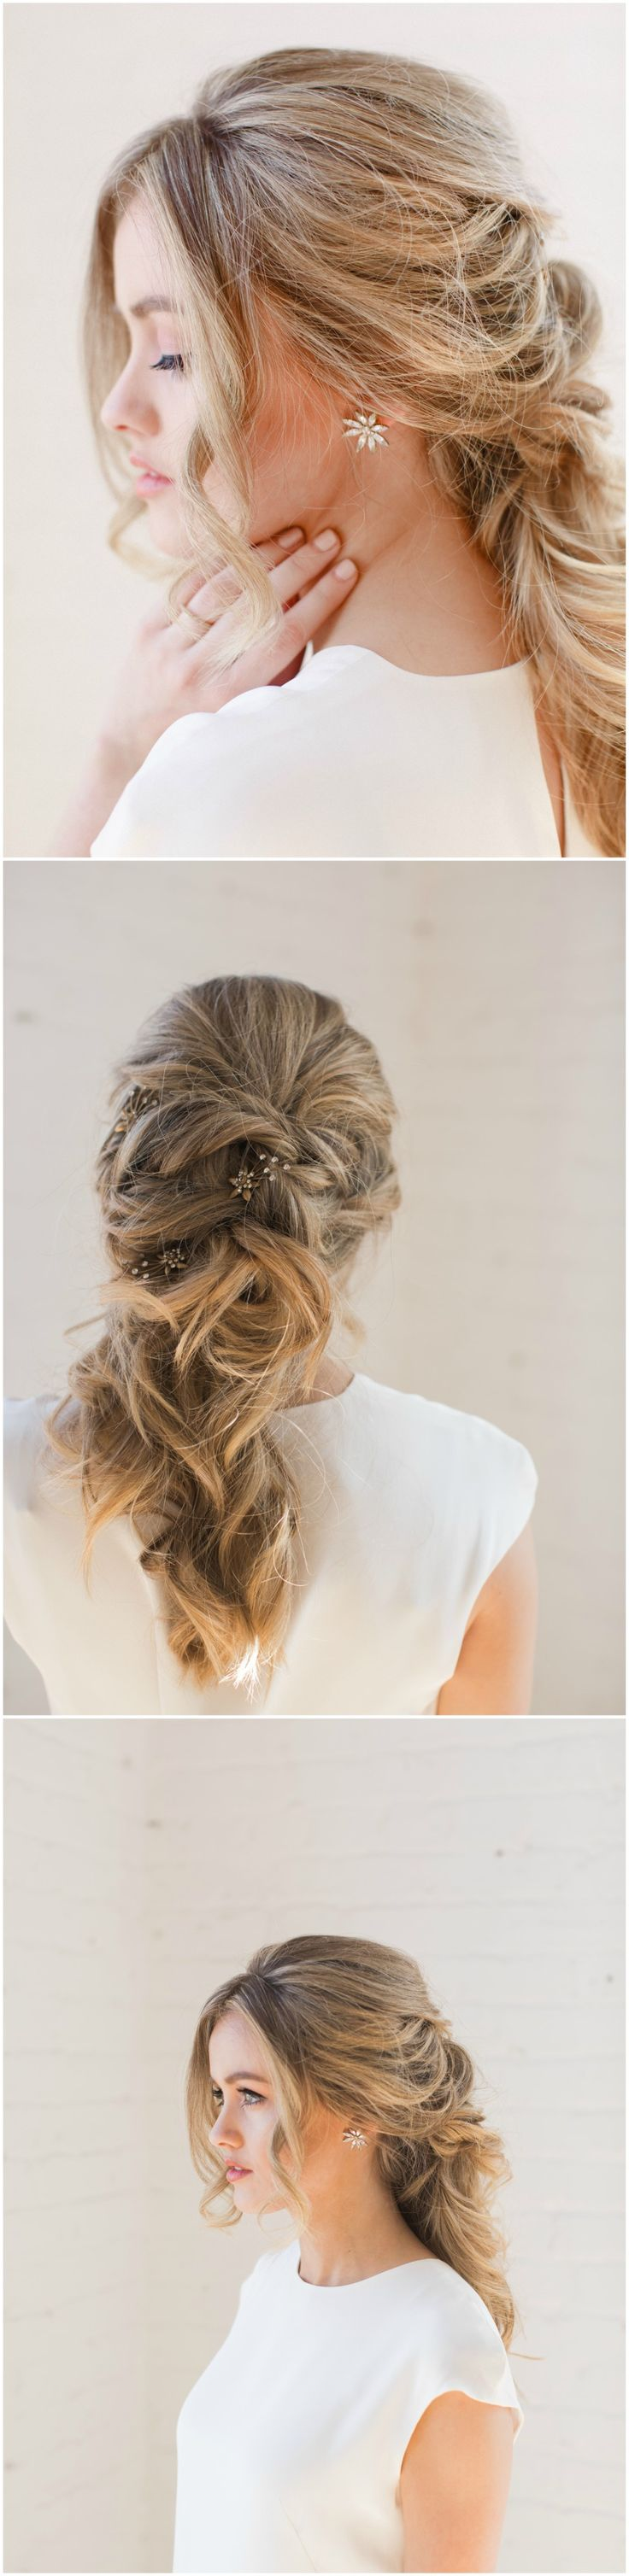 793 best Wedding Hairstyles images on Pinterest